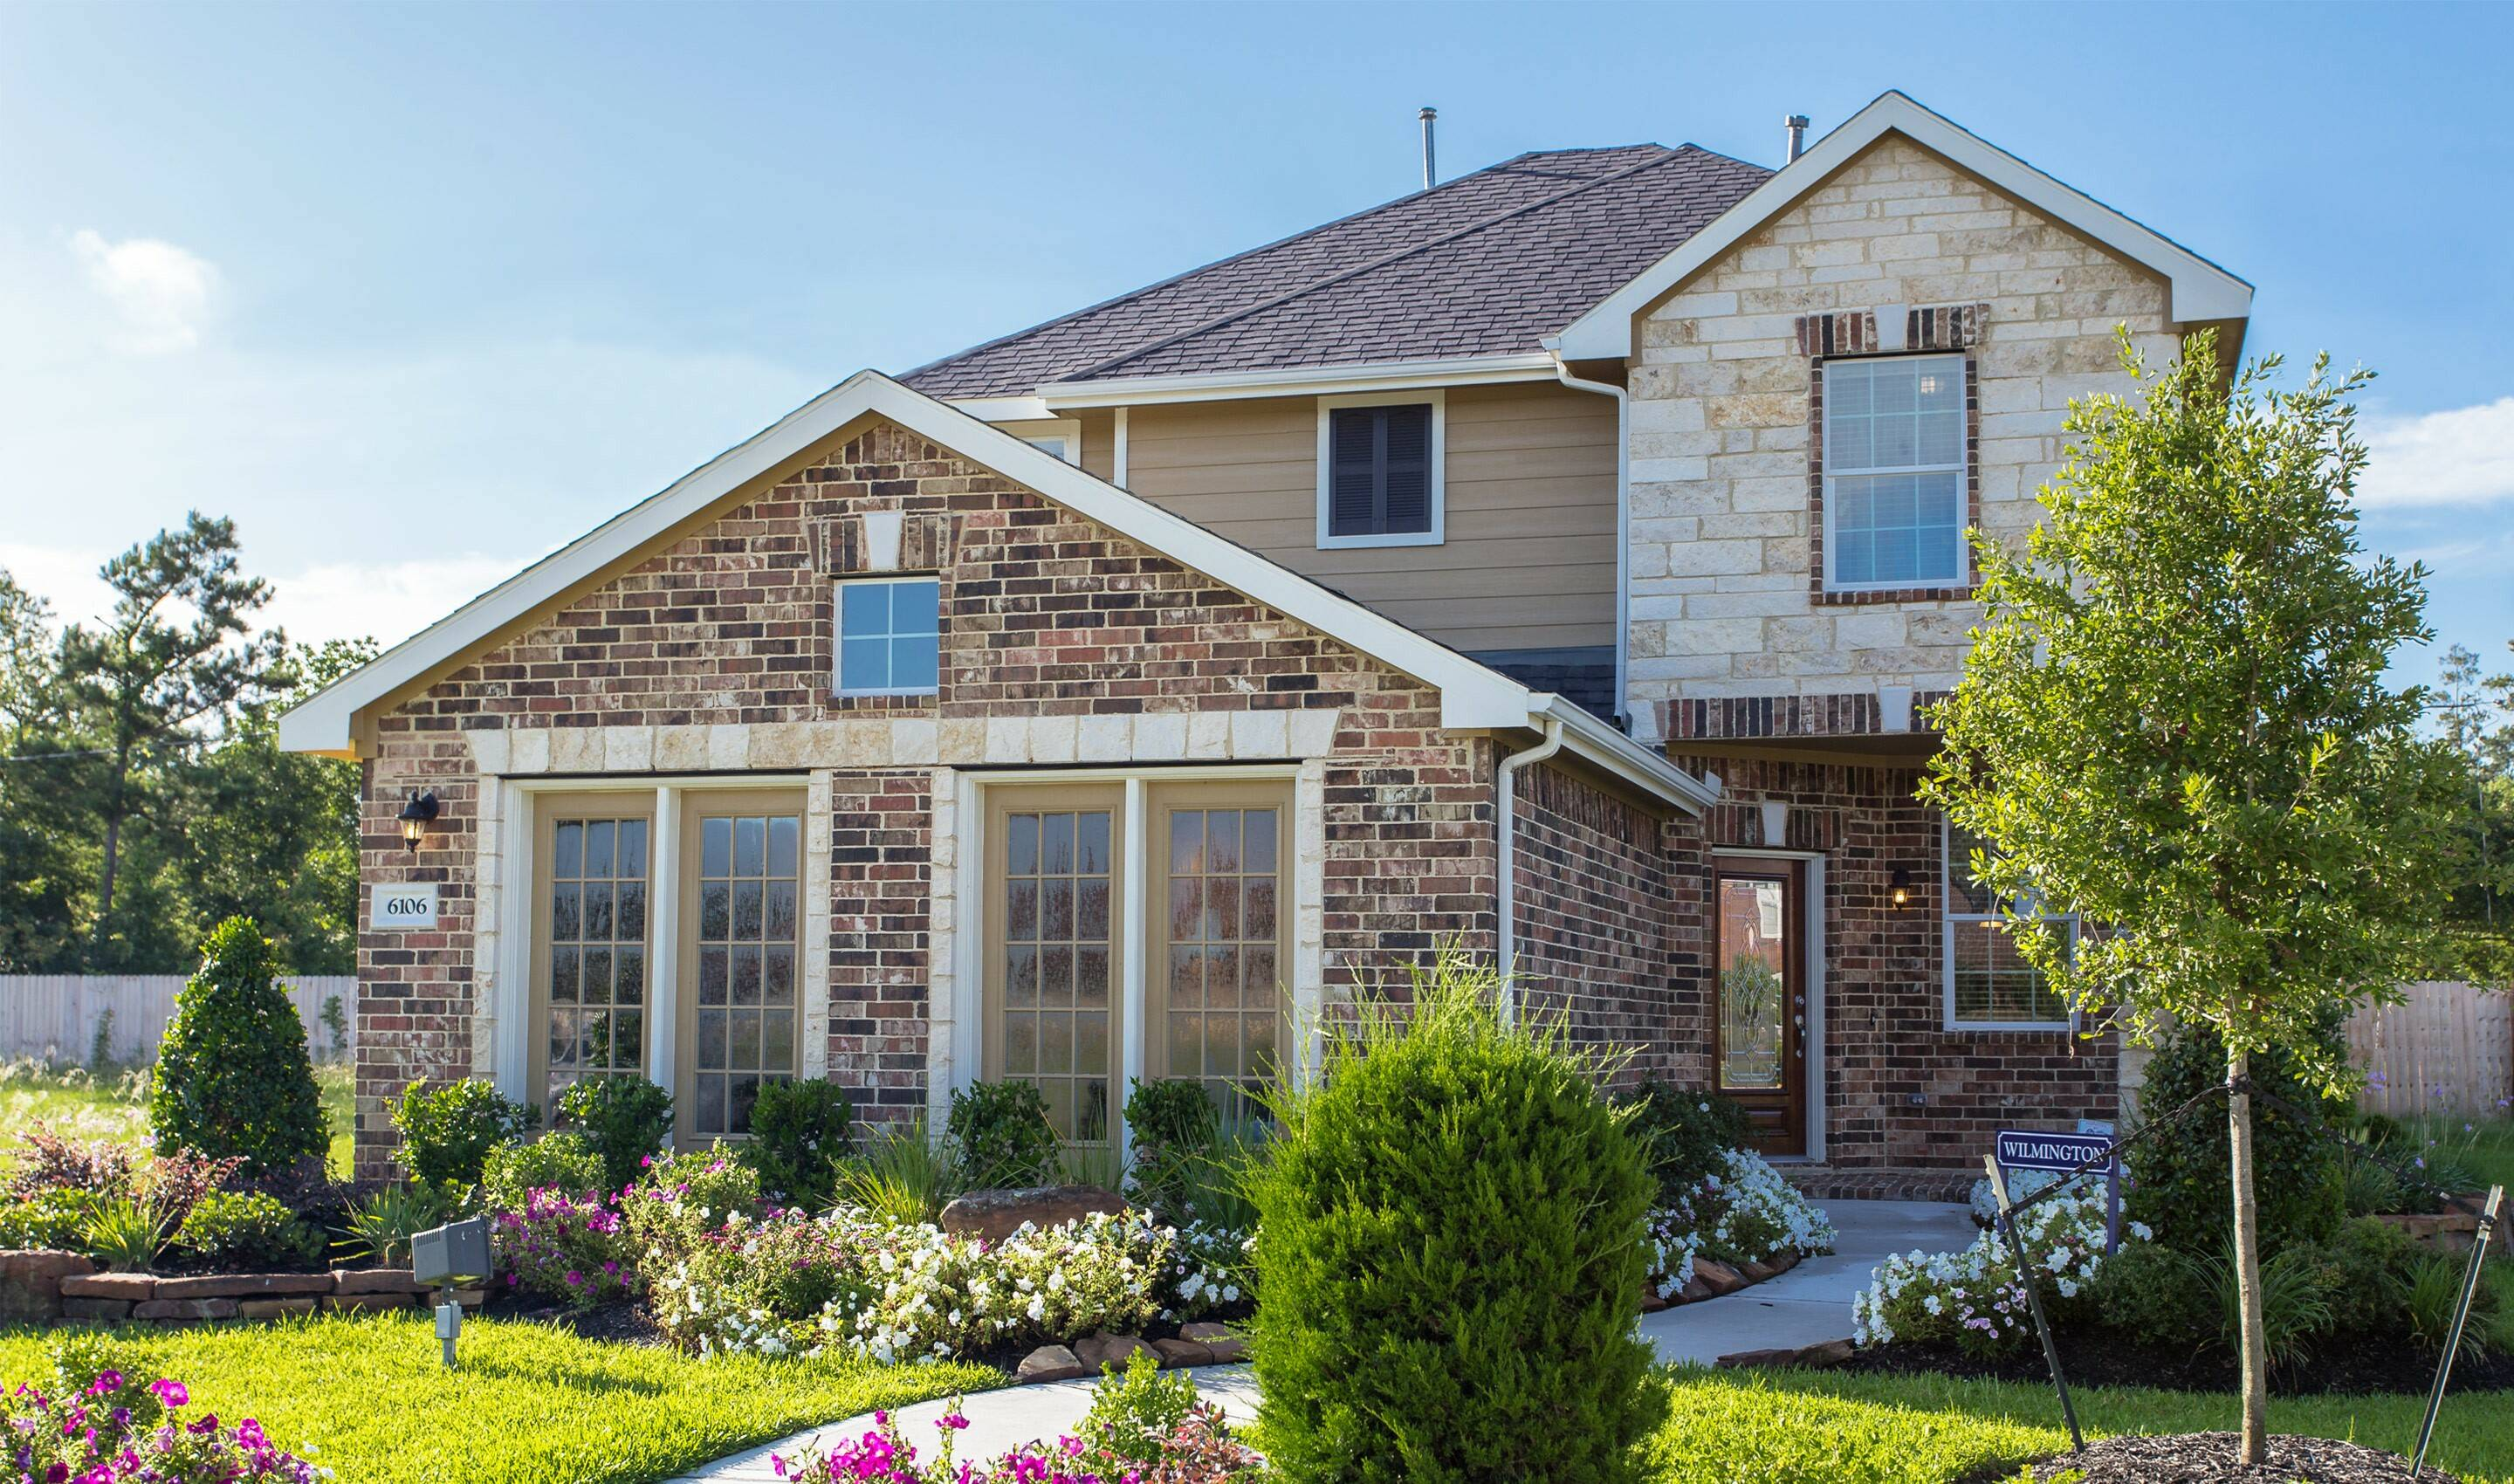 100 typical house style in texas cost for new home Cost to build a house in texas